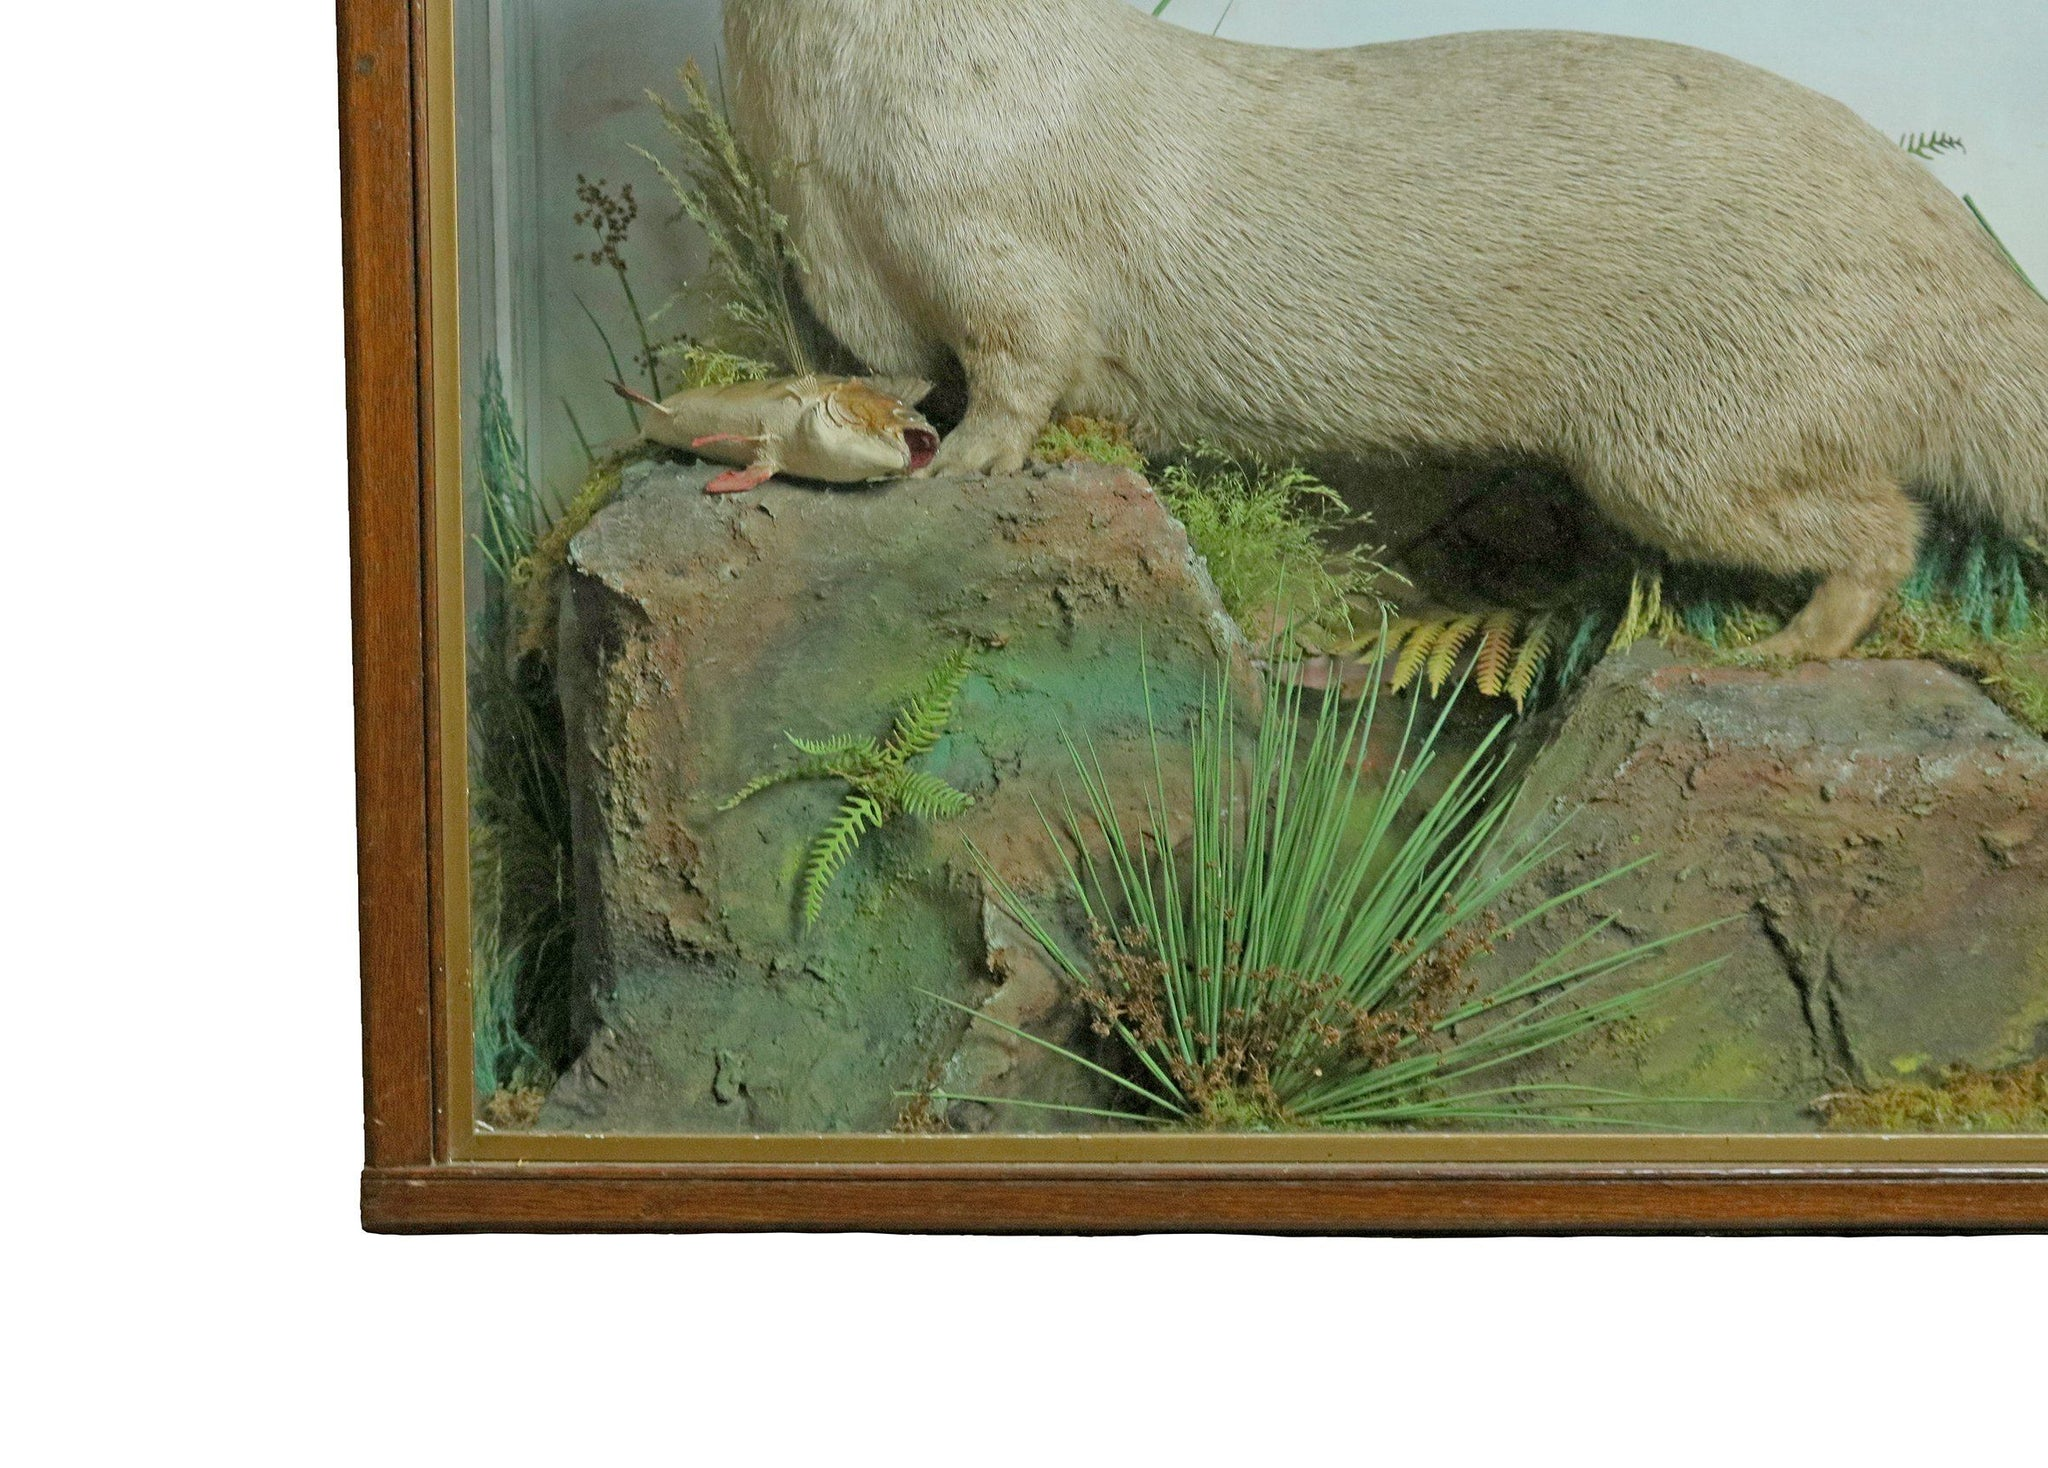 Taxidermy Study of an Otter